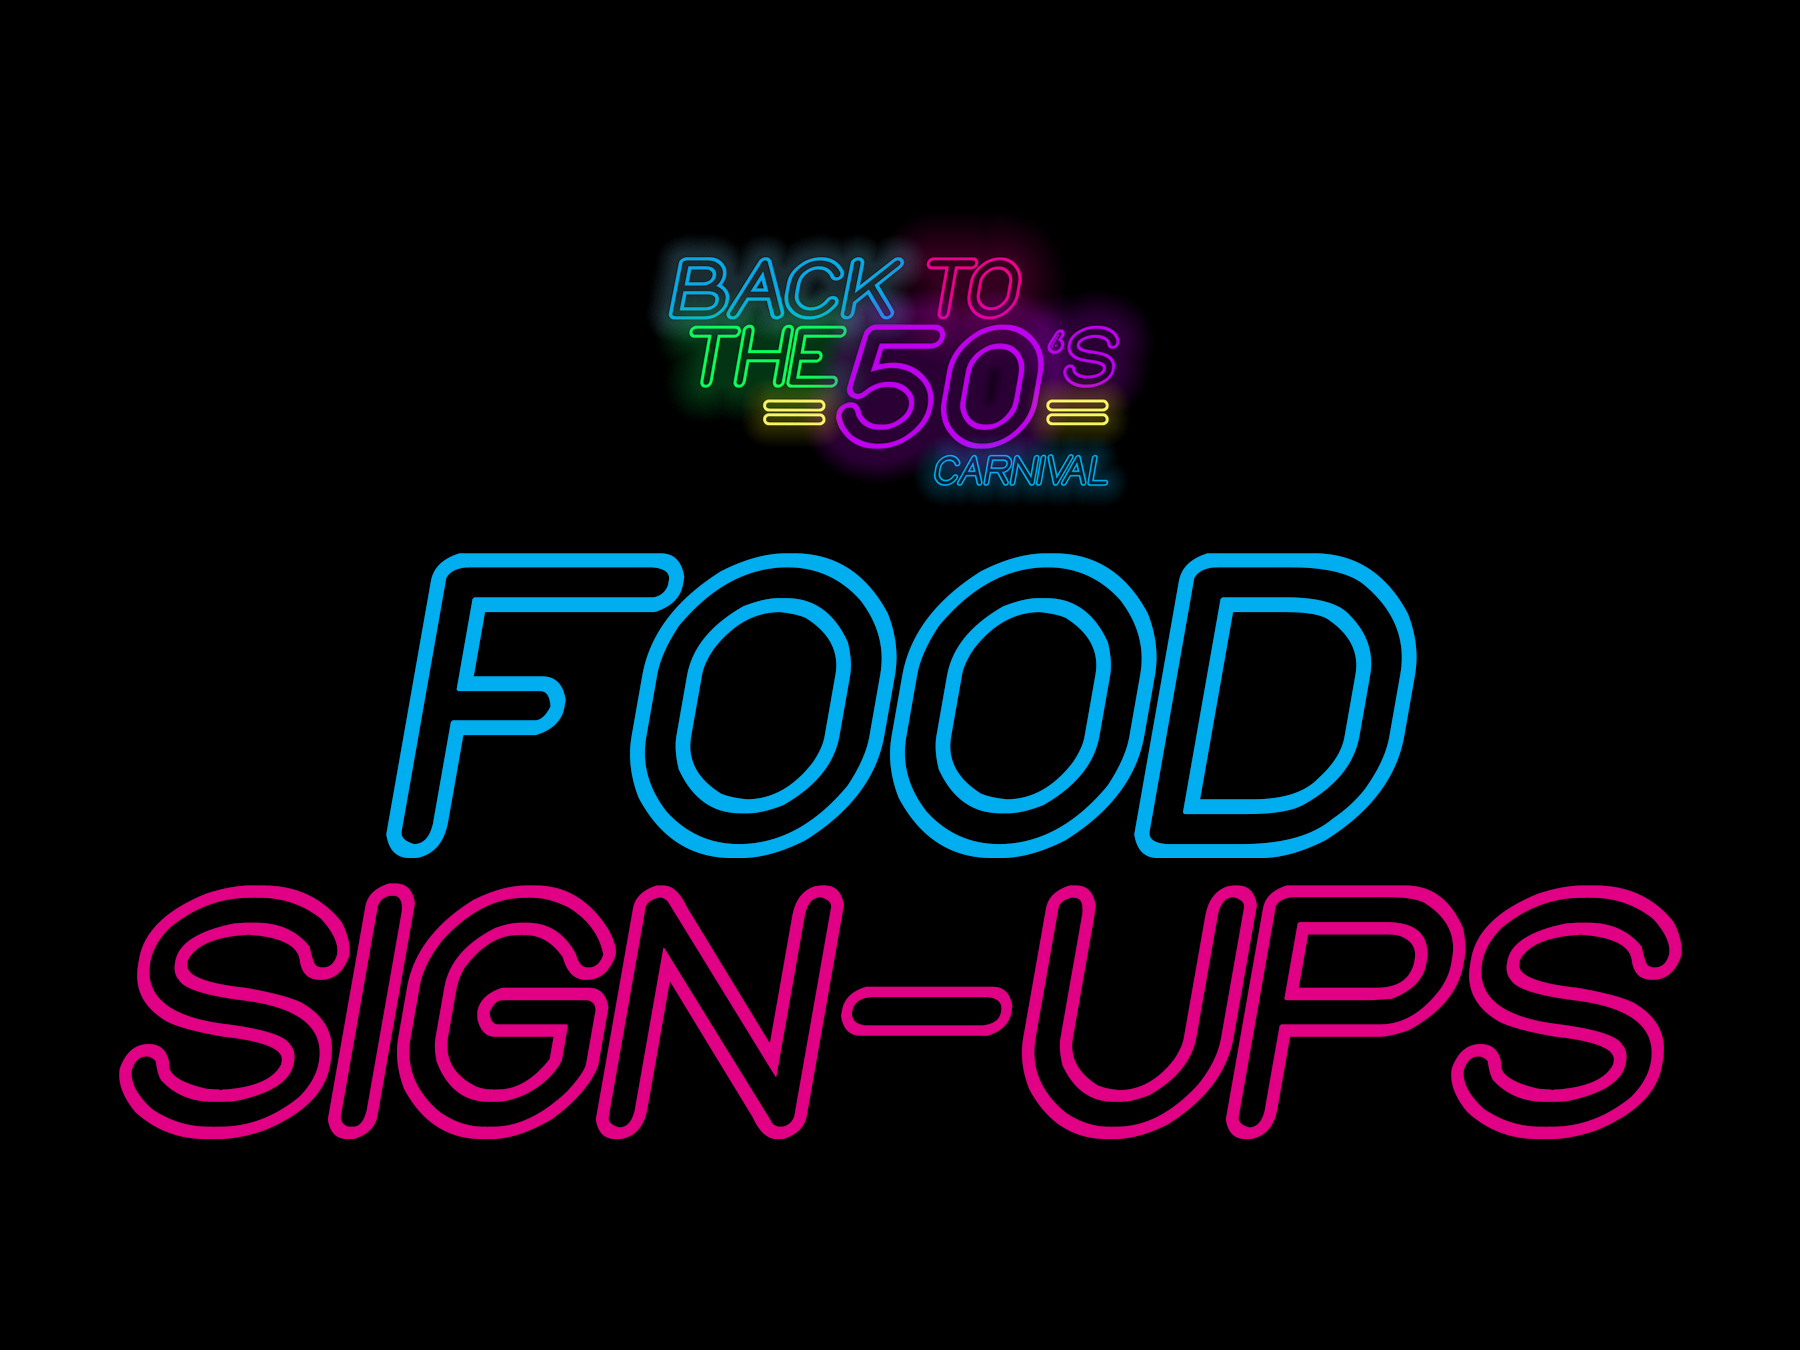 Back2the50s food sign ups